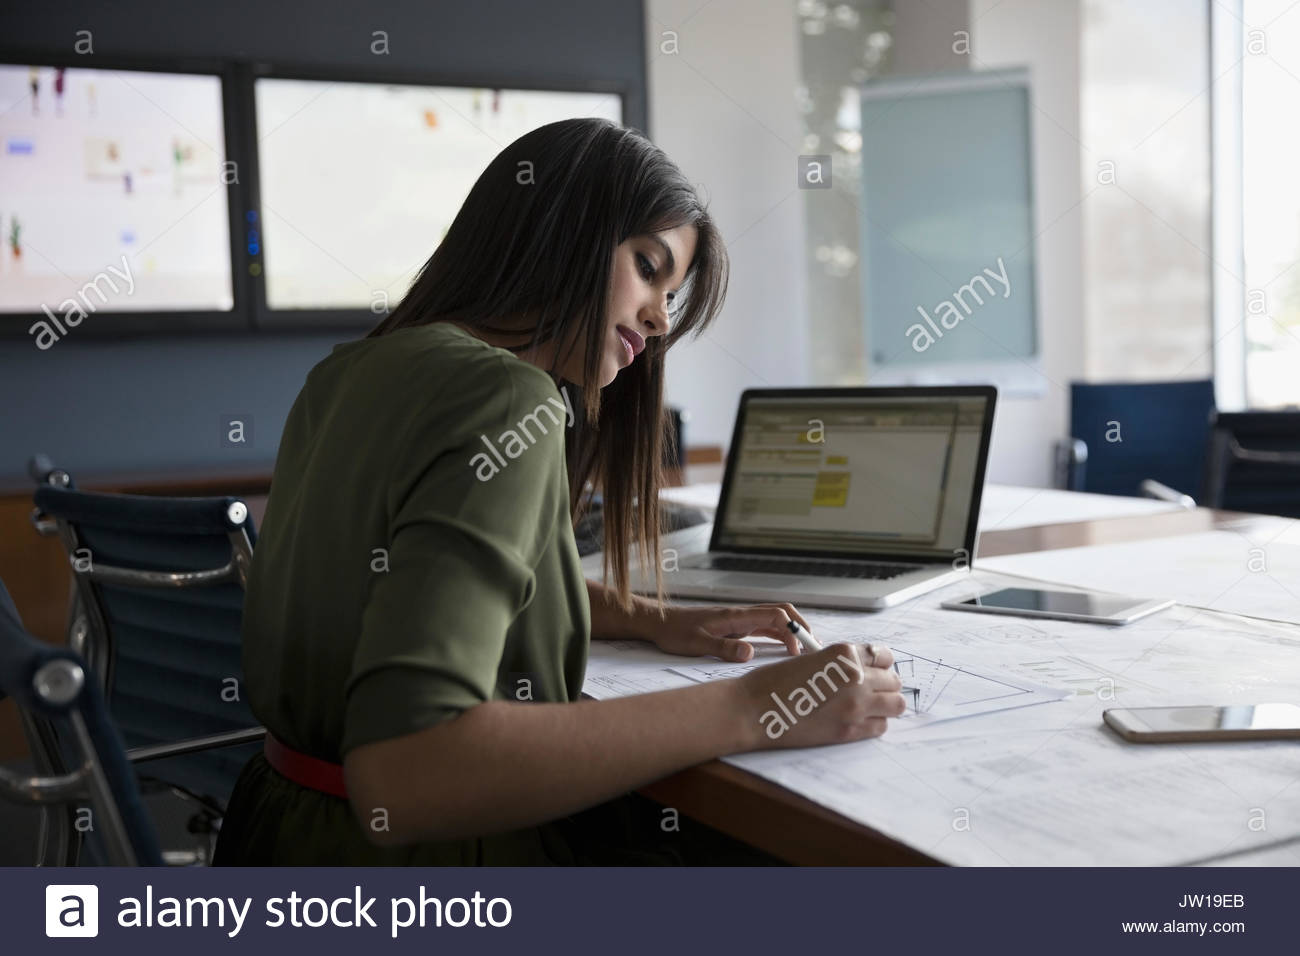 Female architect reviewing and editing blueprints in conference room - Stock Image